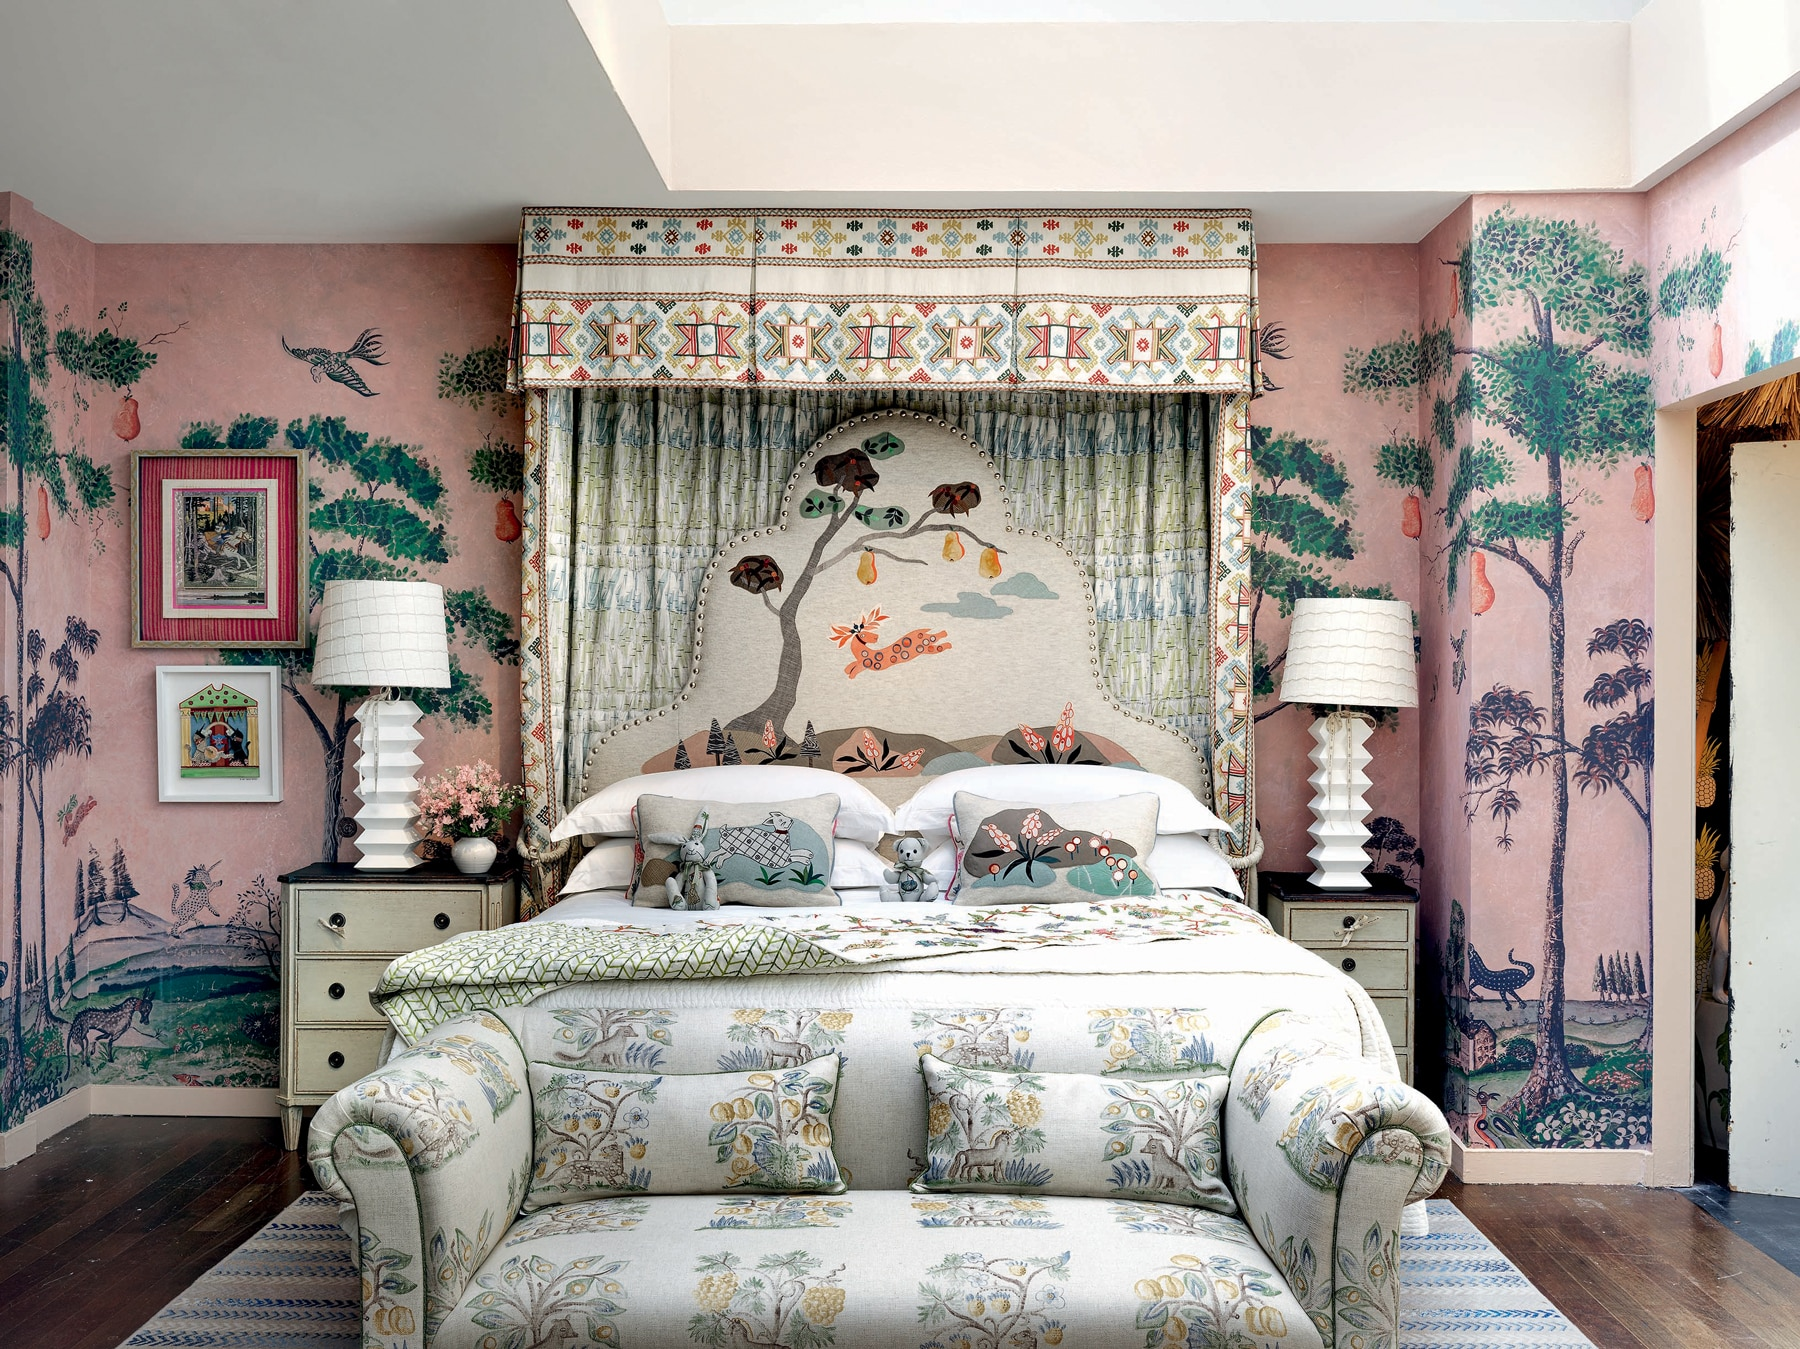 Bedroom with colorful nature wallpaper, matching white geometric lamps, and a nature printed couch